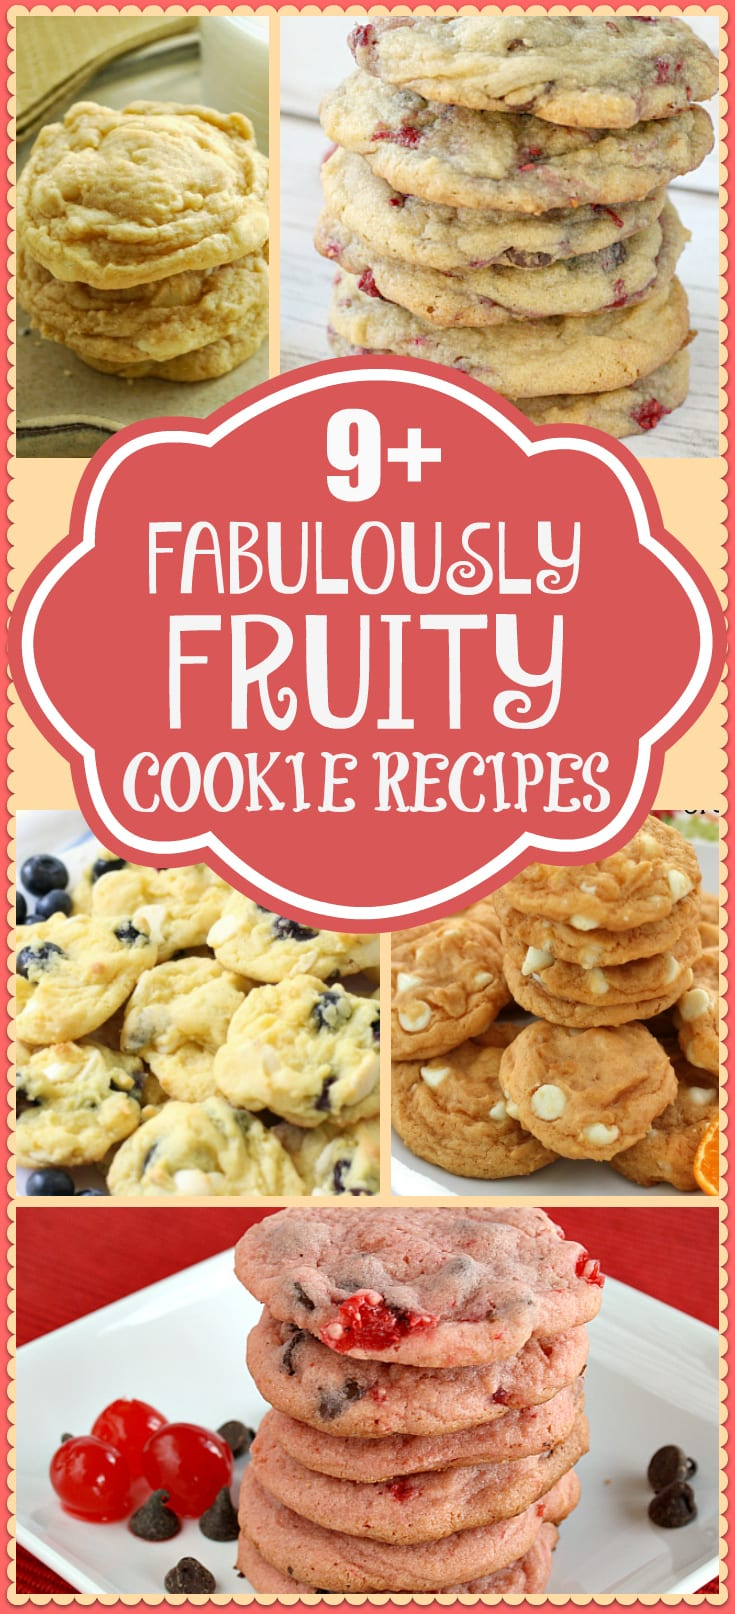 Amazing fruity cookie recipes featuring cookies with fruit ~ Butter With A Side of Bread